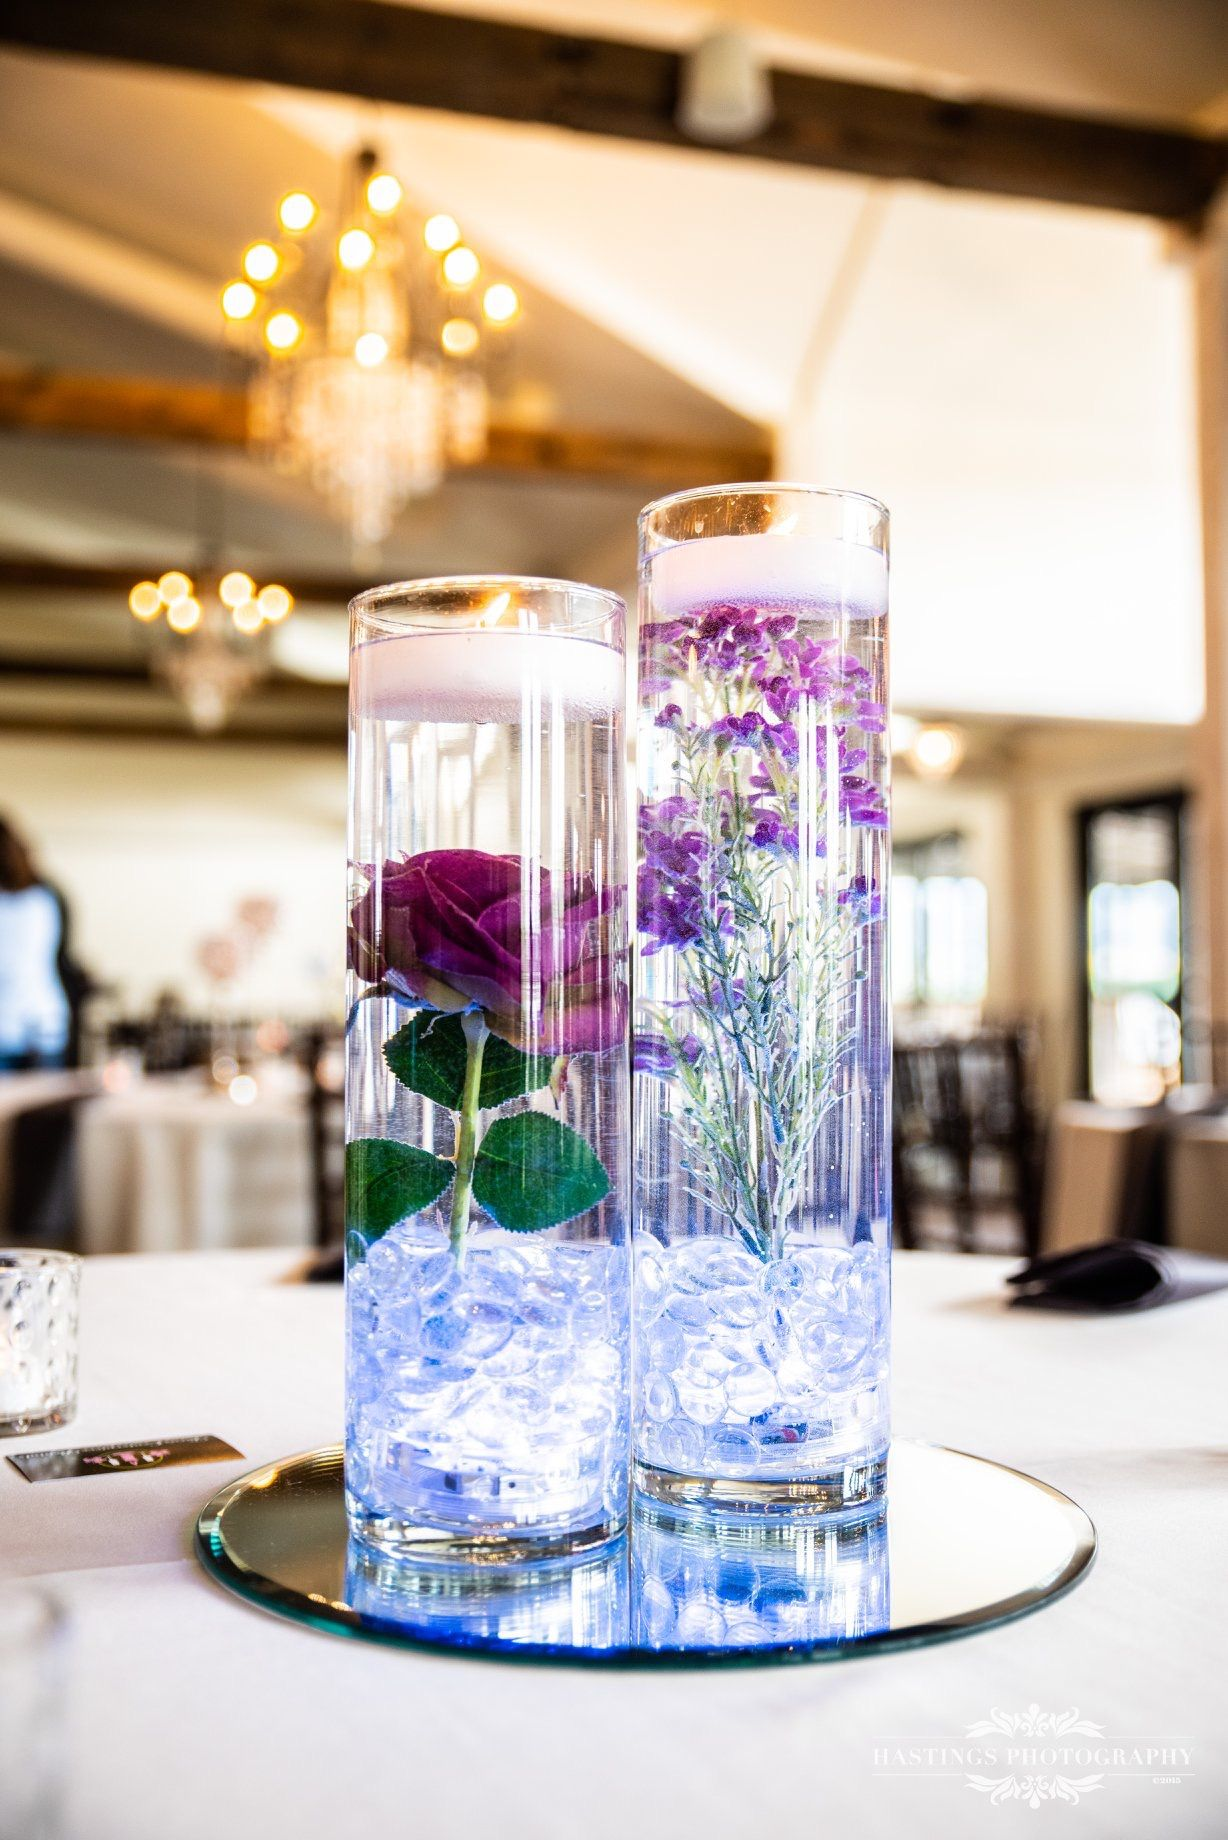 Pinterest & Glass vase filled with water lights up! | Wedding ...